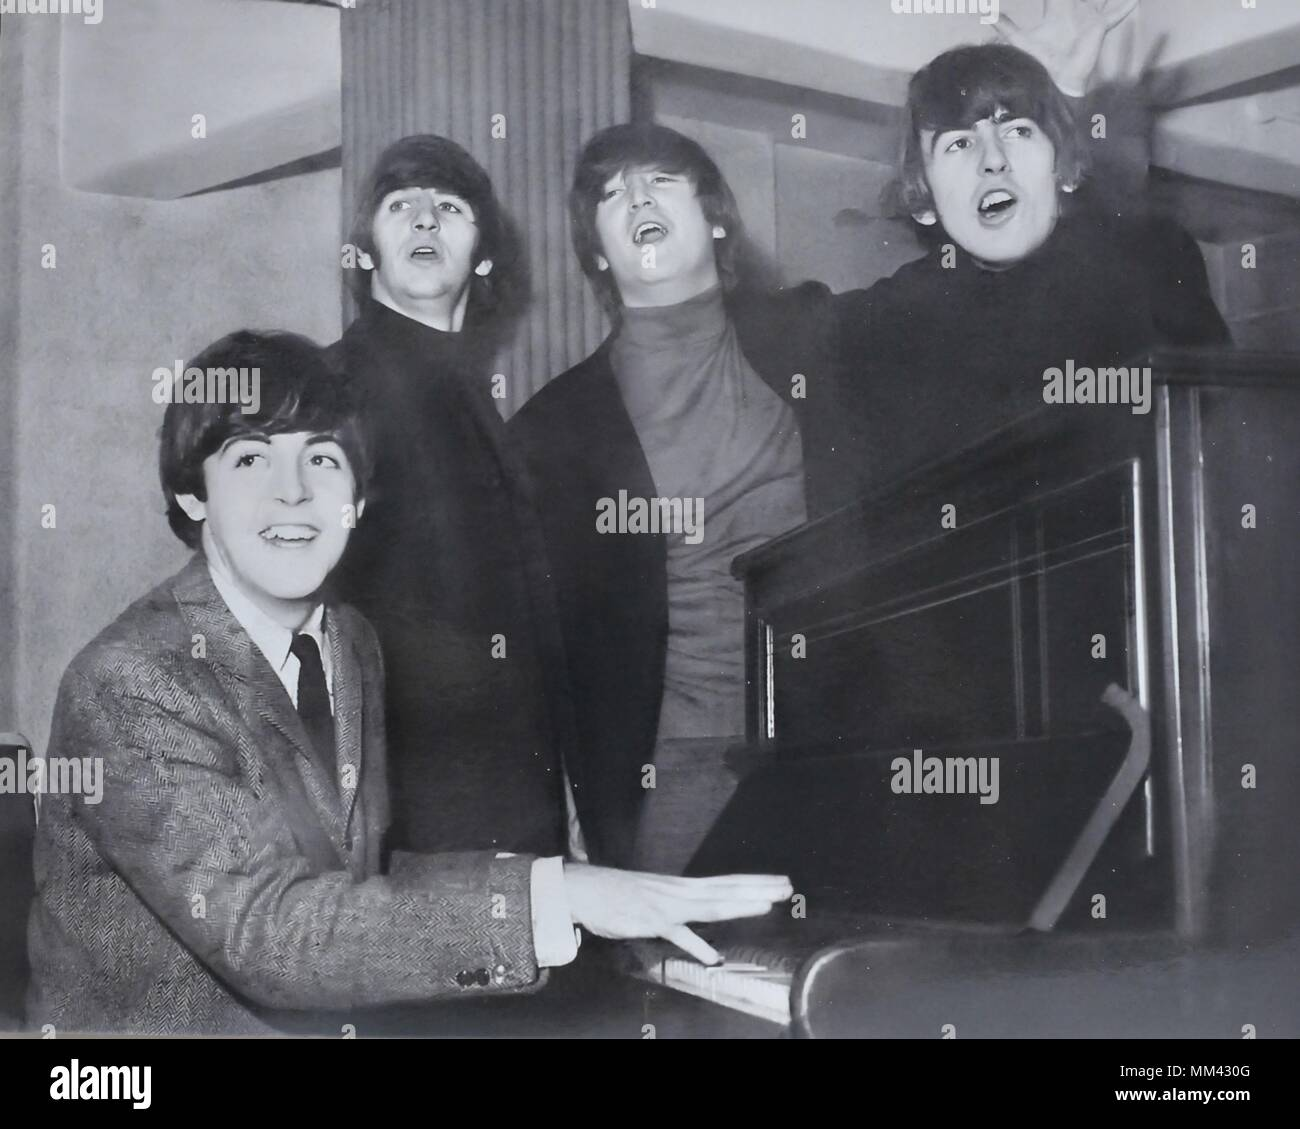 The Beatles at the Grand Theatre Leeds - Stock Image